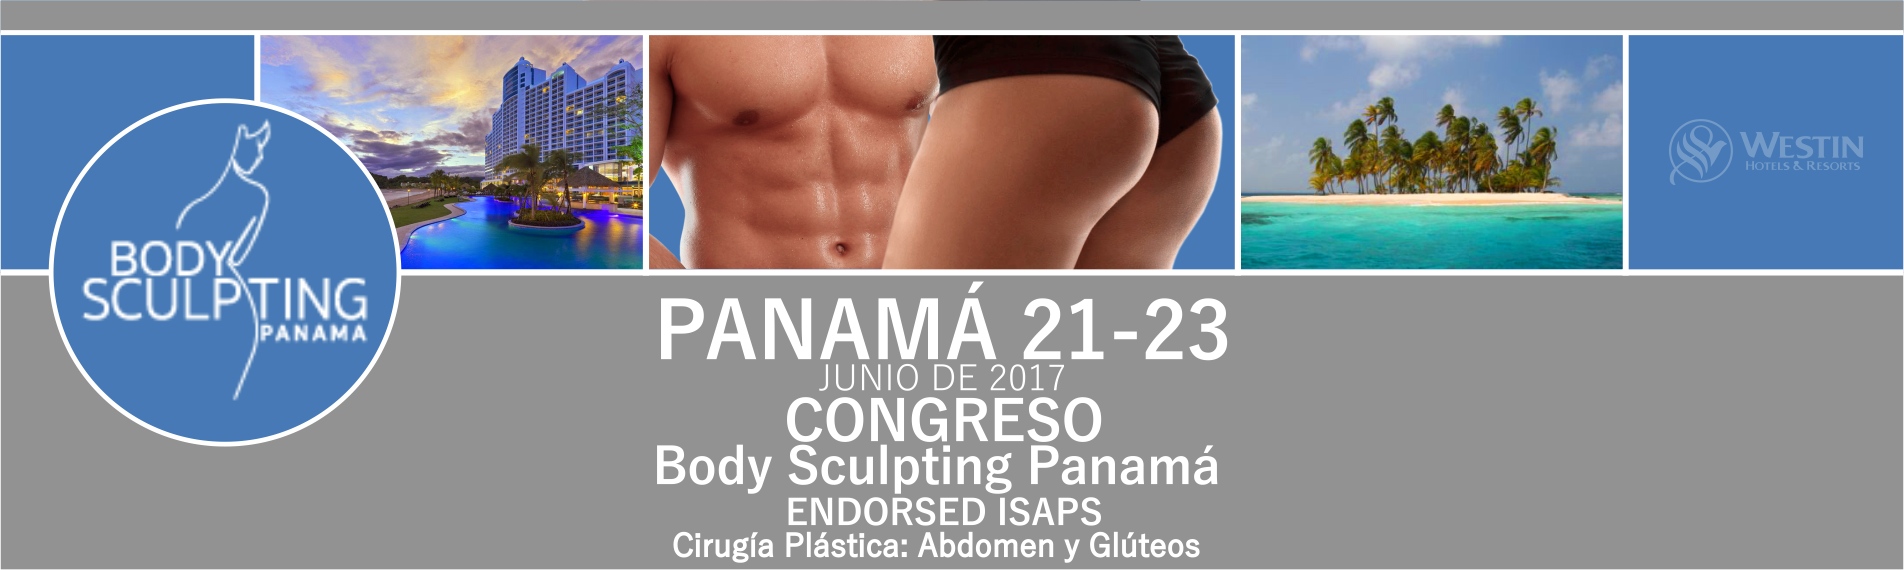 Body Sculpting Panamá